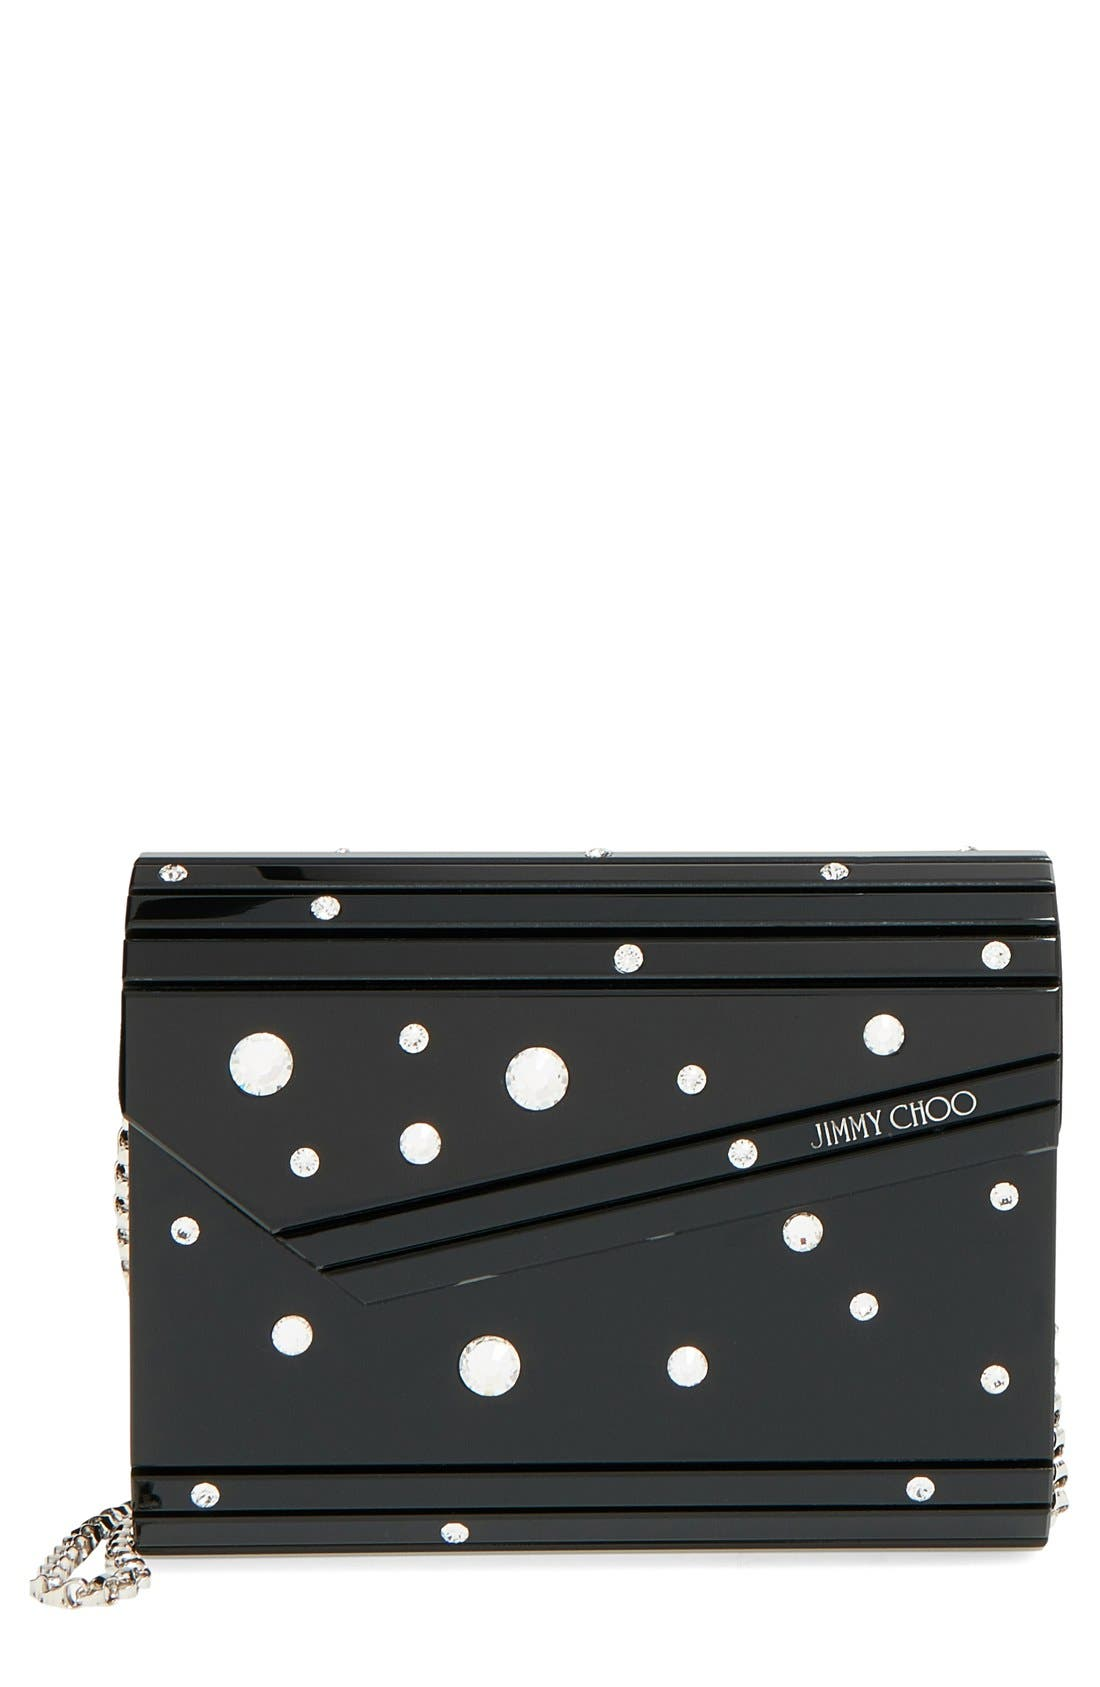 Alternate Image 1 Selected - Jimmy Choo 'Candy - Crystal' Clutch